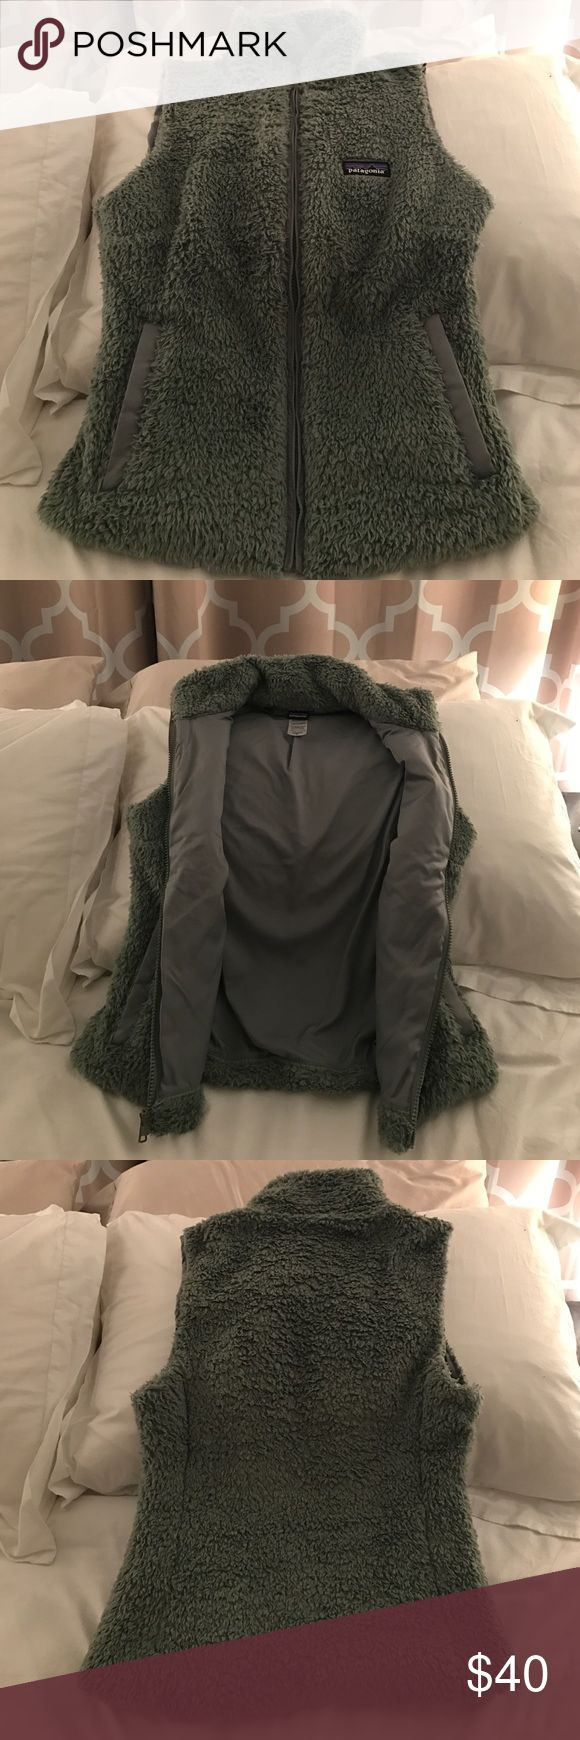 Patagonia Los Gatos best -green Perfect condition and very soft! Firm on price Patagonia Jackets & Coats Vests